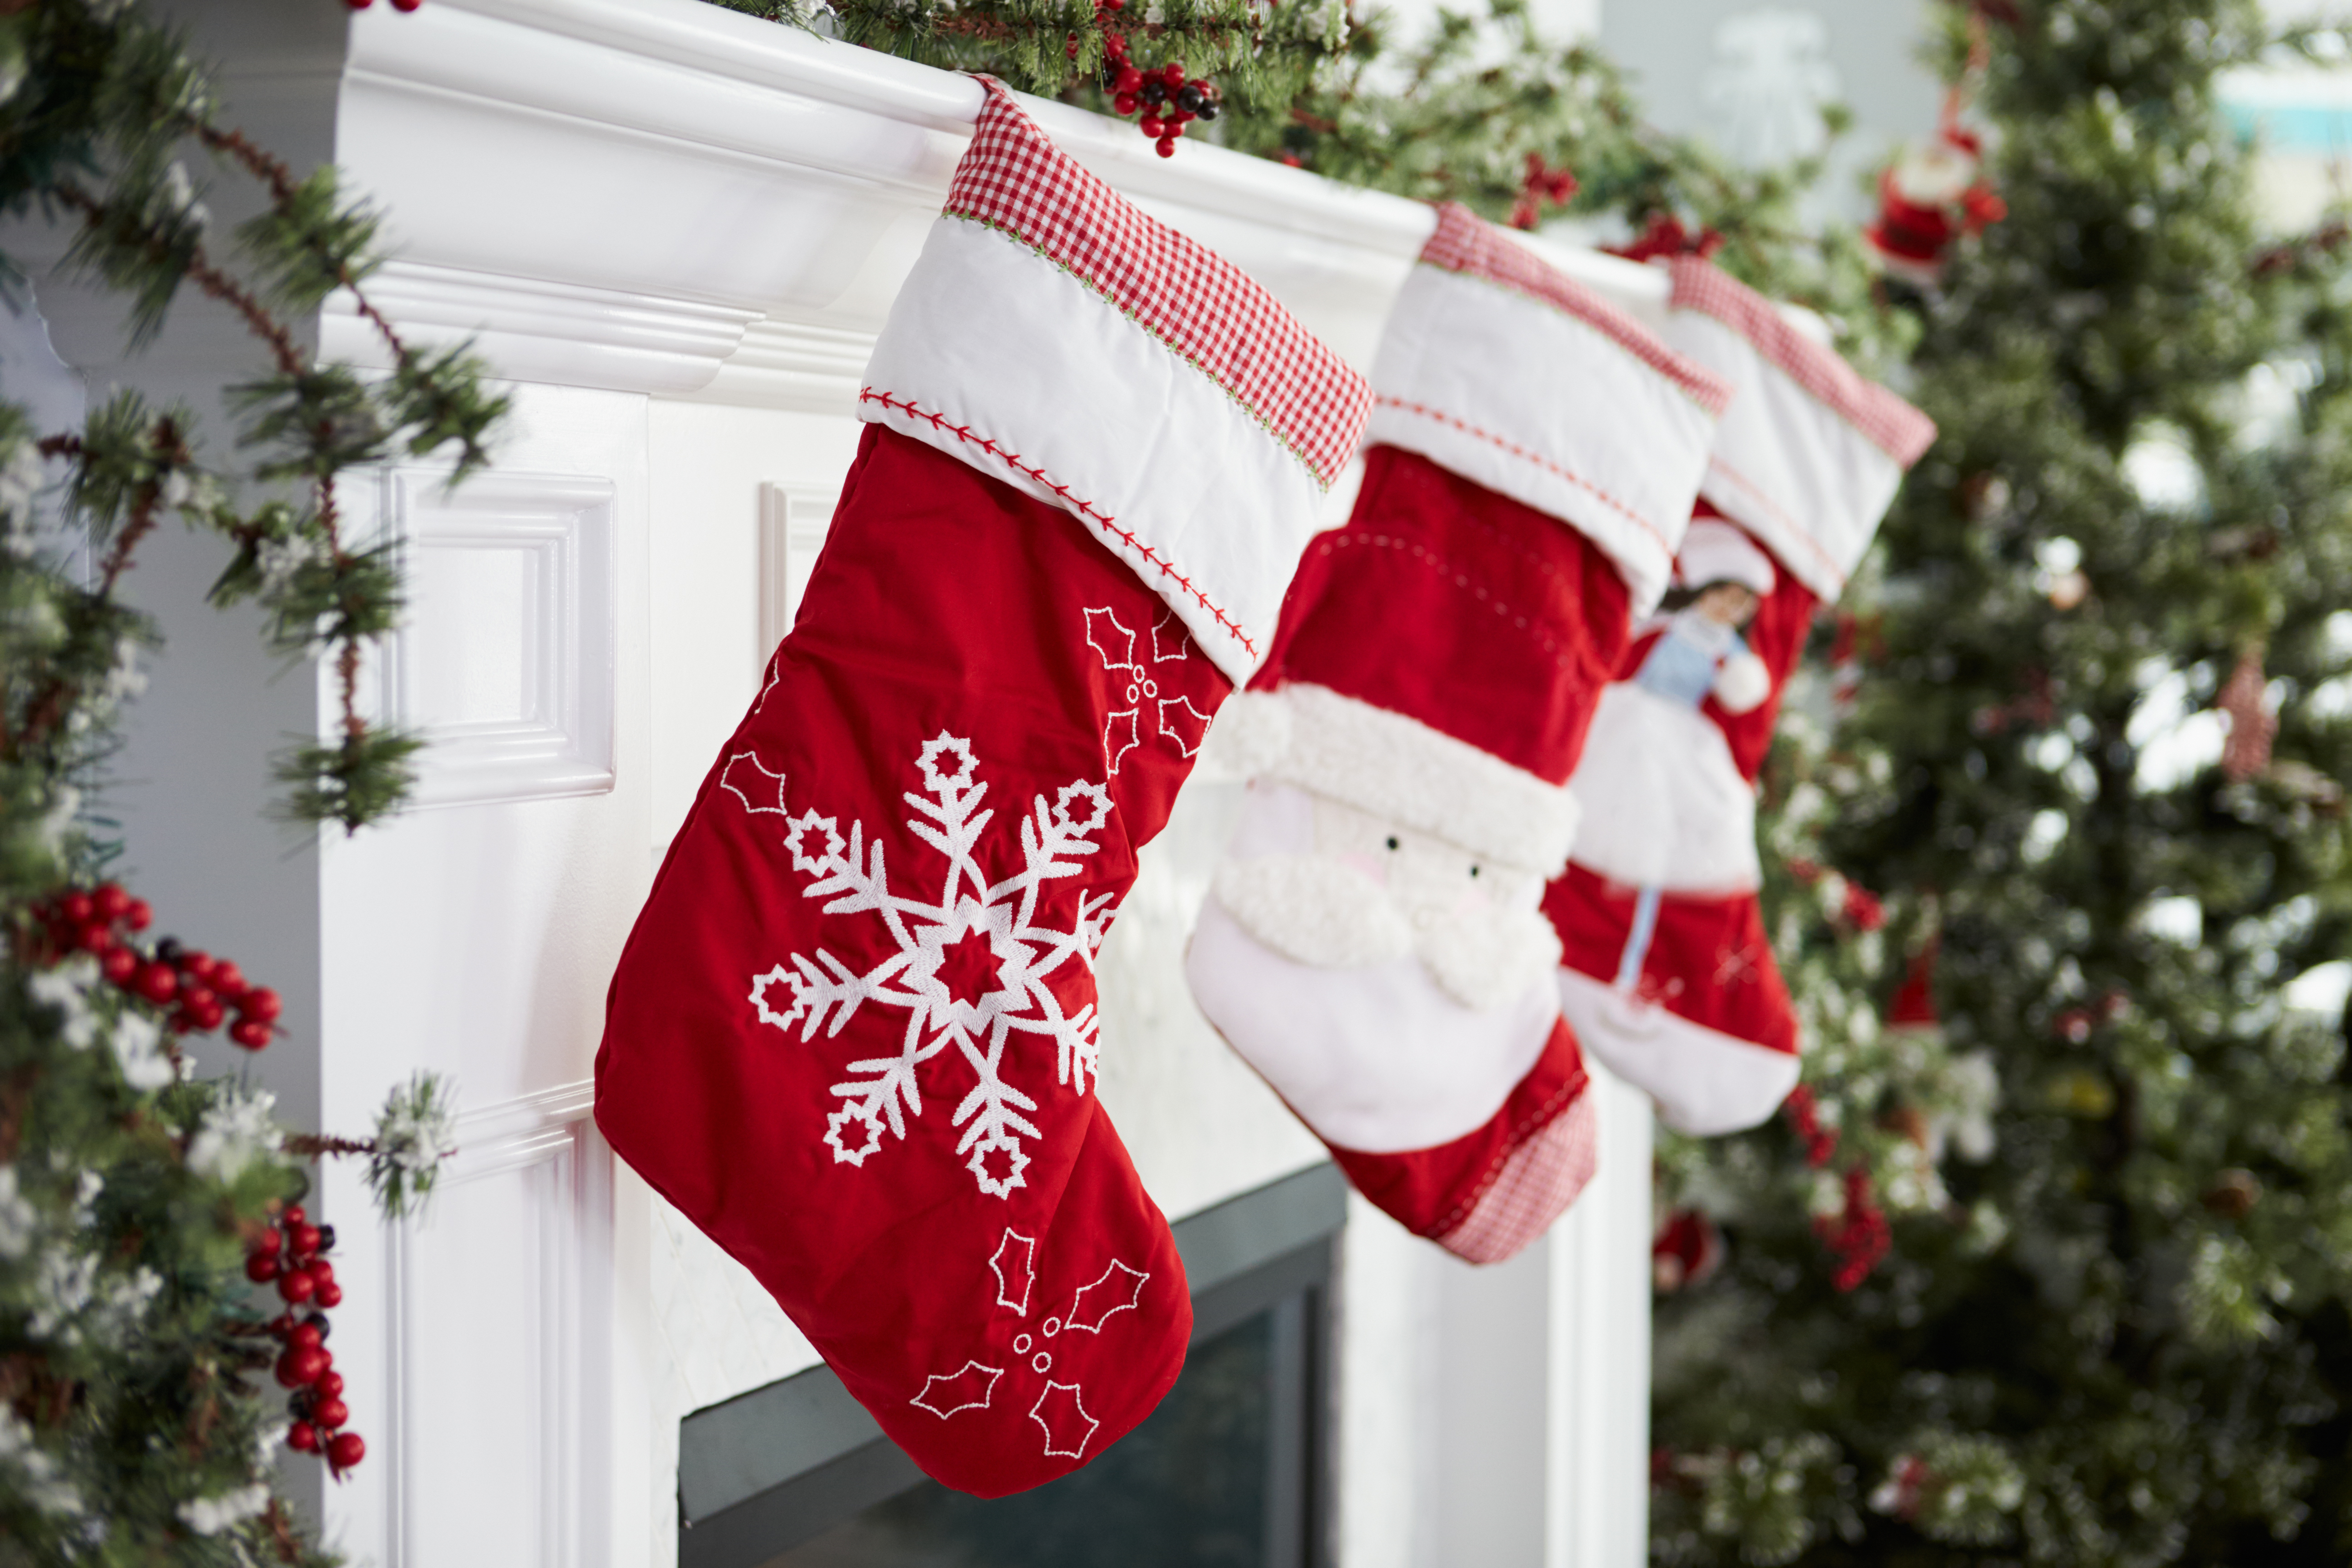 A young couple whose baby died at Christmastime would hang a stocking for him.